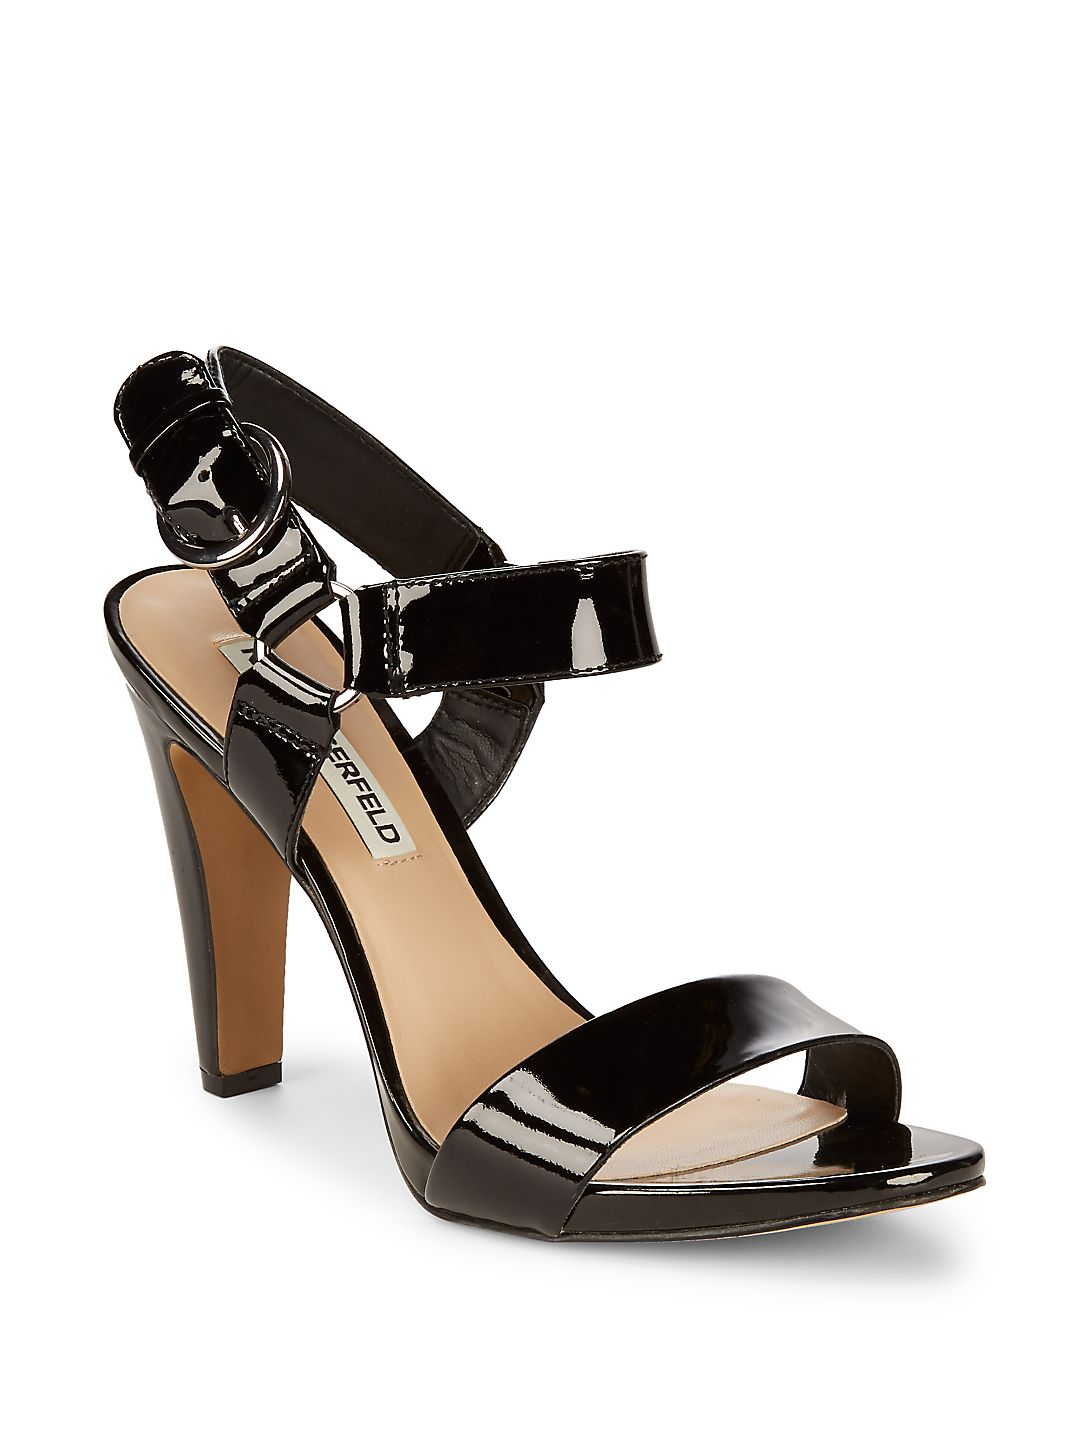 Cieone Leather Ankle-Strap Sandals